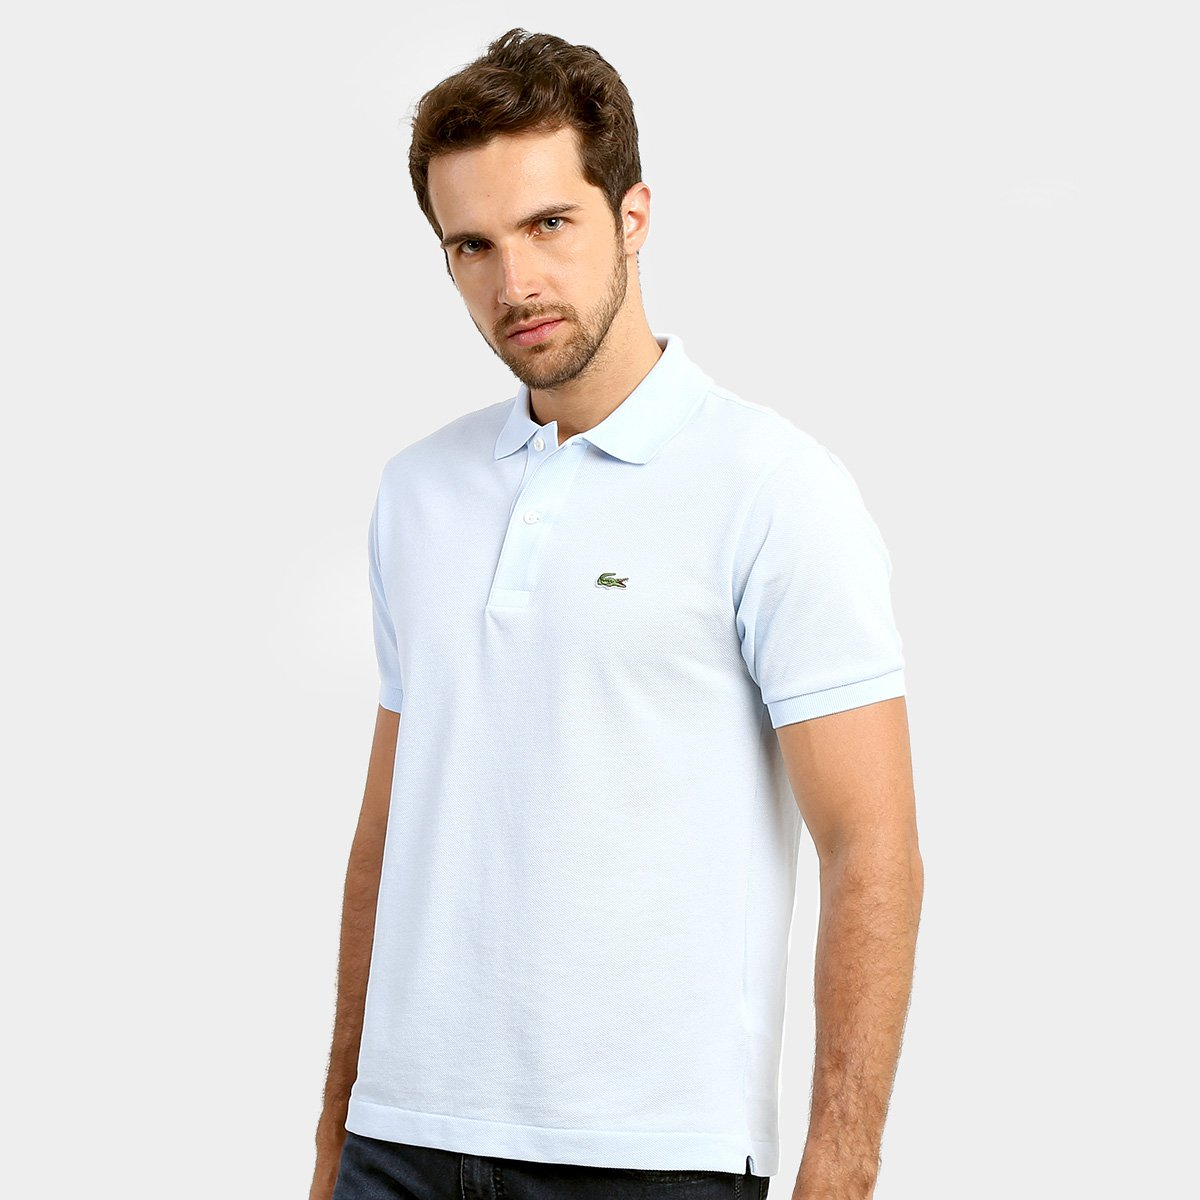 Camisa Polo Lacoste Original Fit Masculina b63968623a